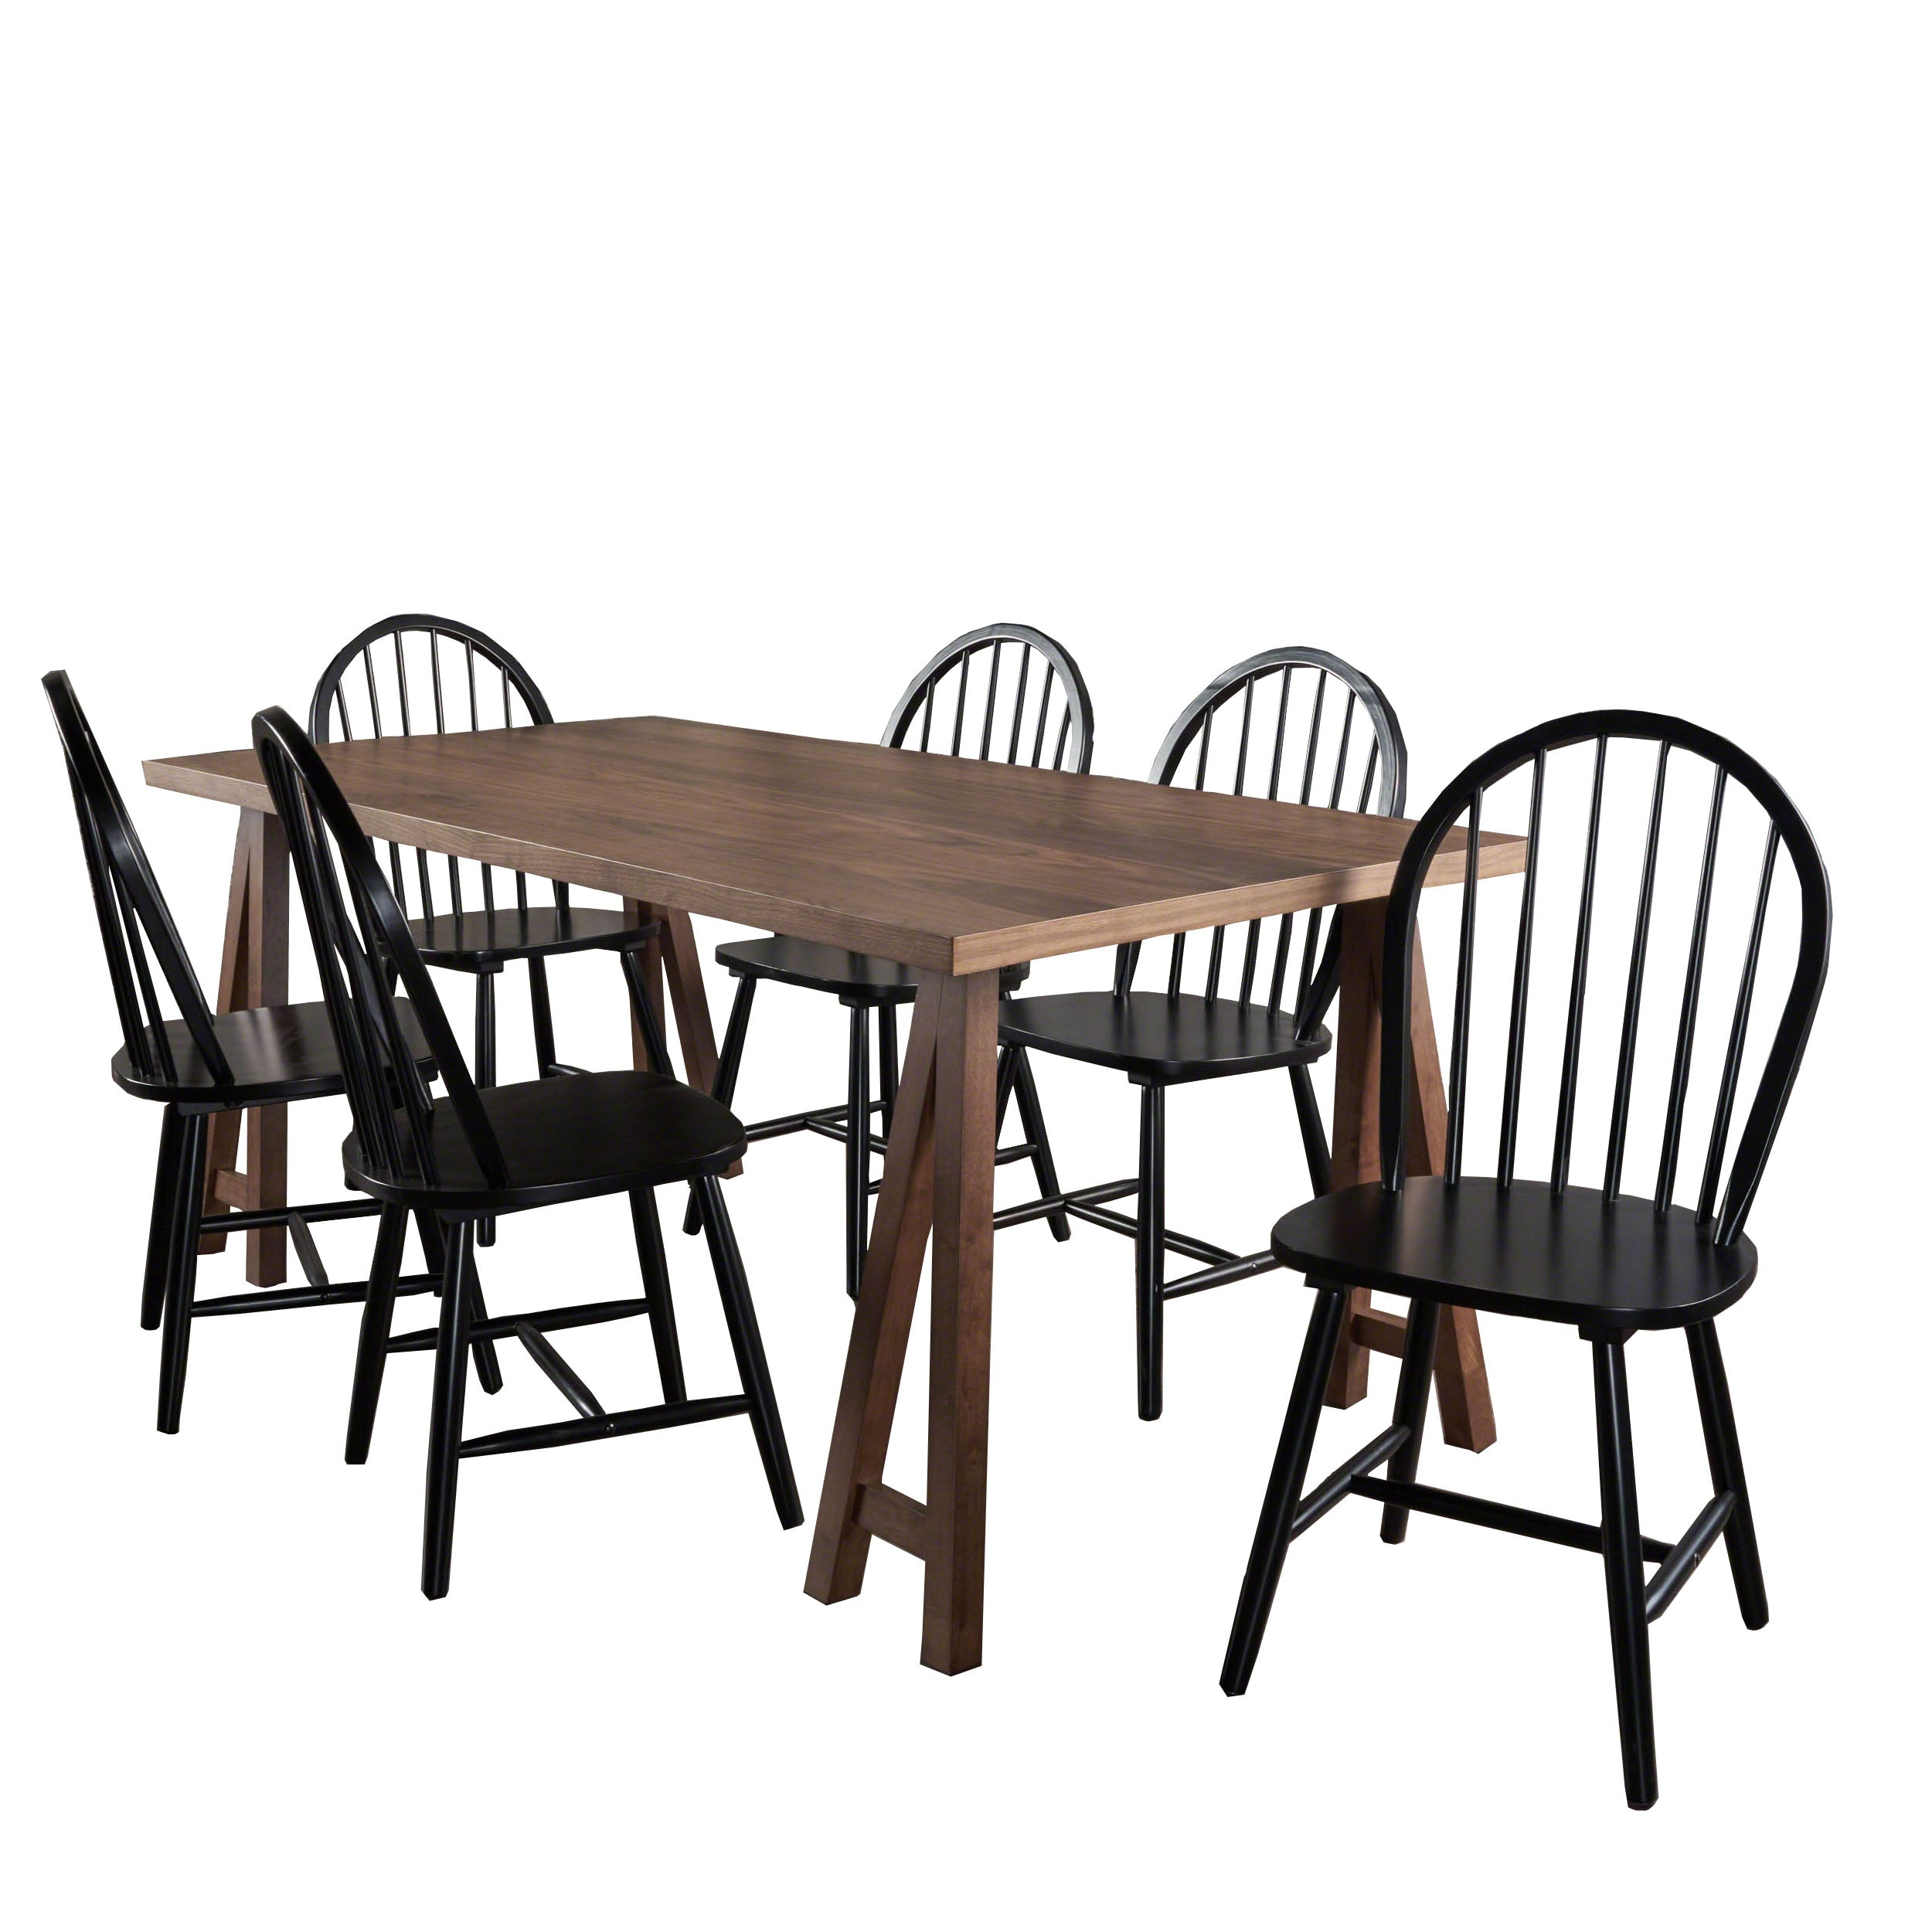 Angela Farmhouse Cottage 7 Piece Faux Wood Dining Set with Rubberwood Chairs Natural WalnutWhite